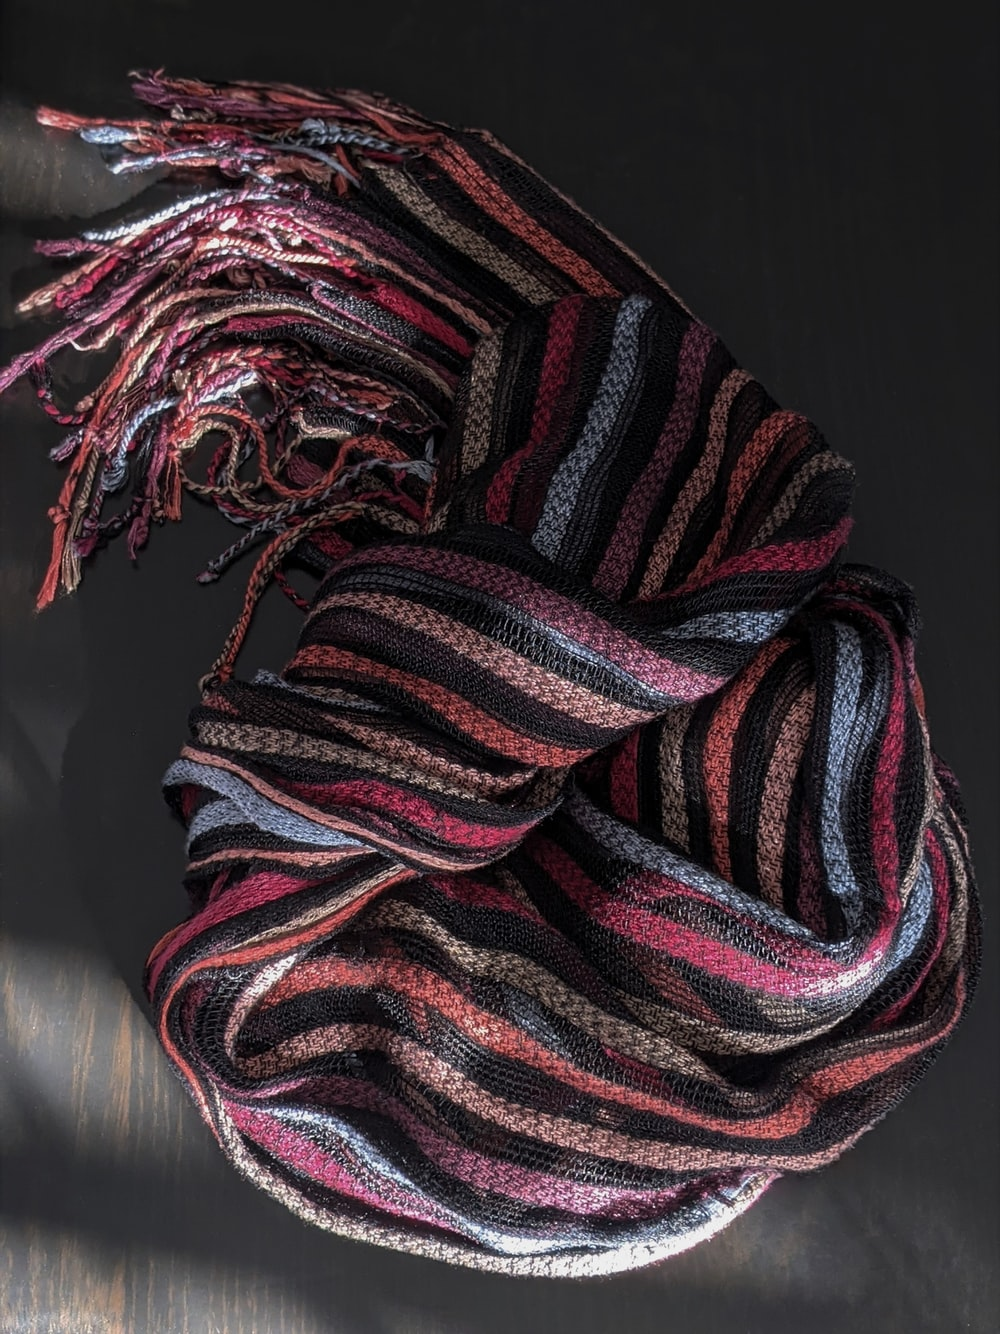 red and black striped textile